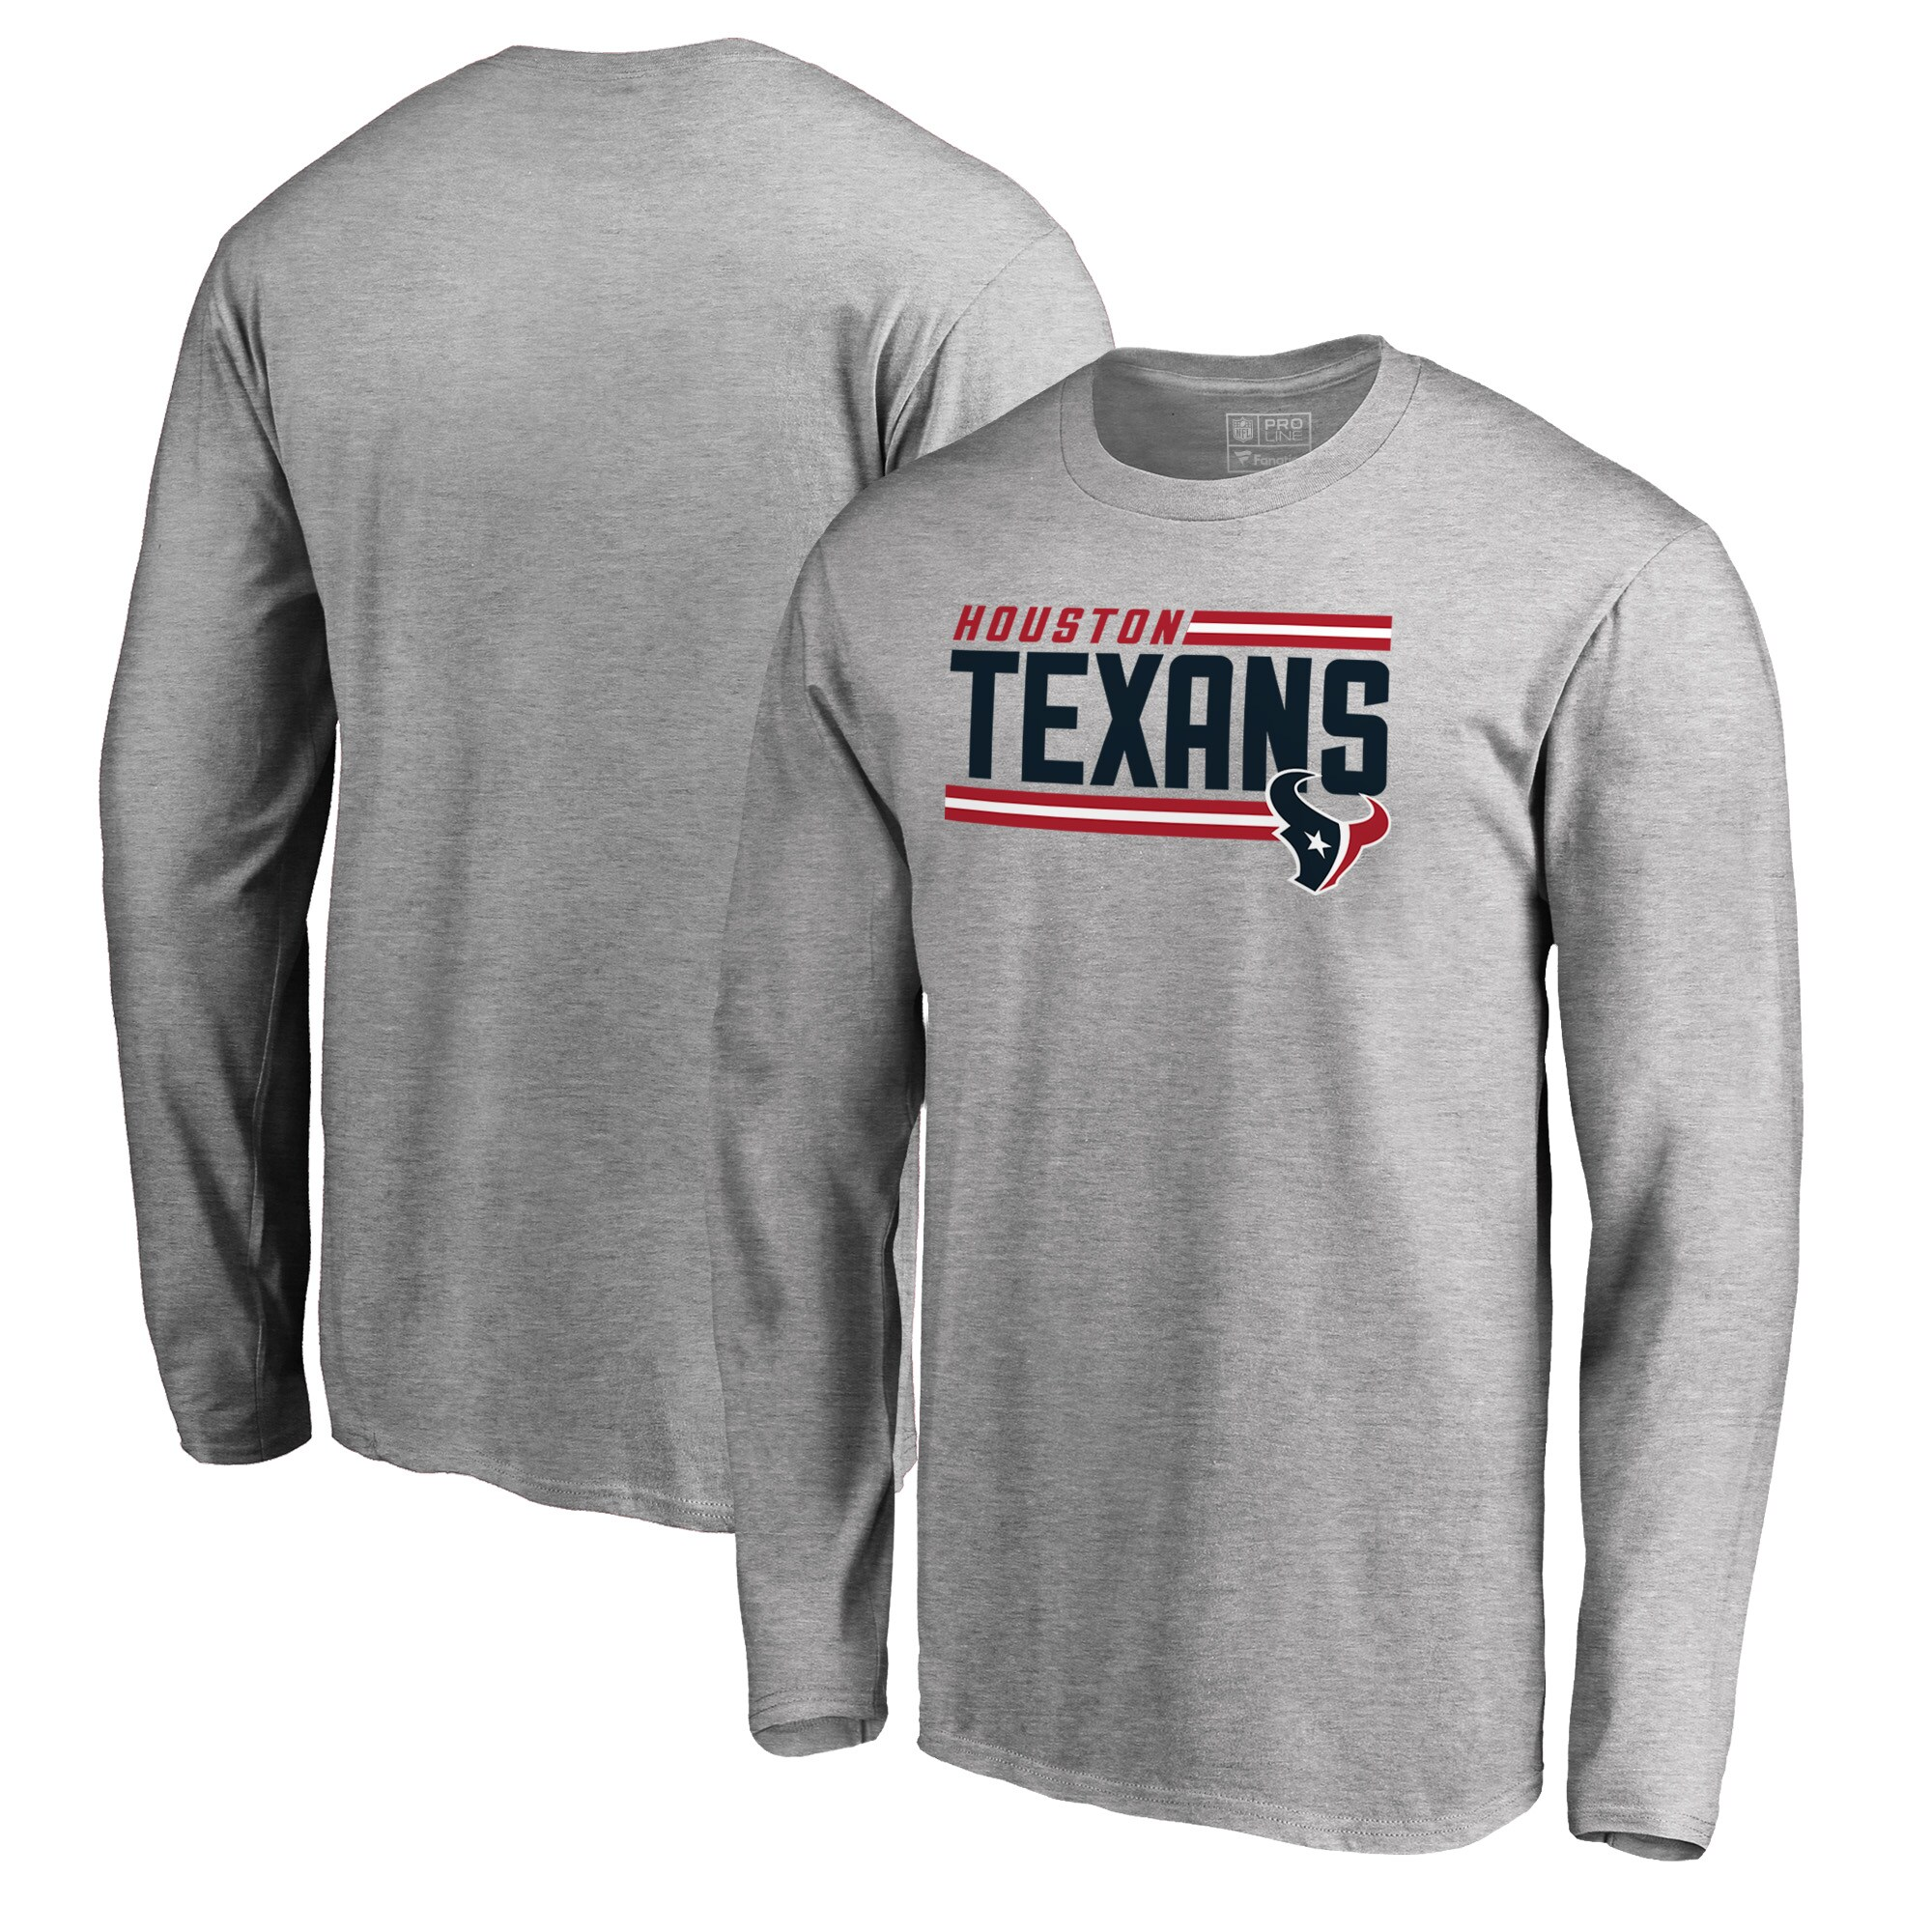 Houston Texans NFL Pro Line by Fanatics Branded Iconic Collection On Side Stripe Long Sleeve T-Shirt - Ash